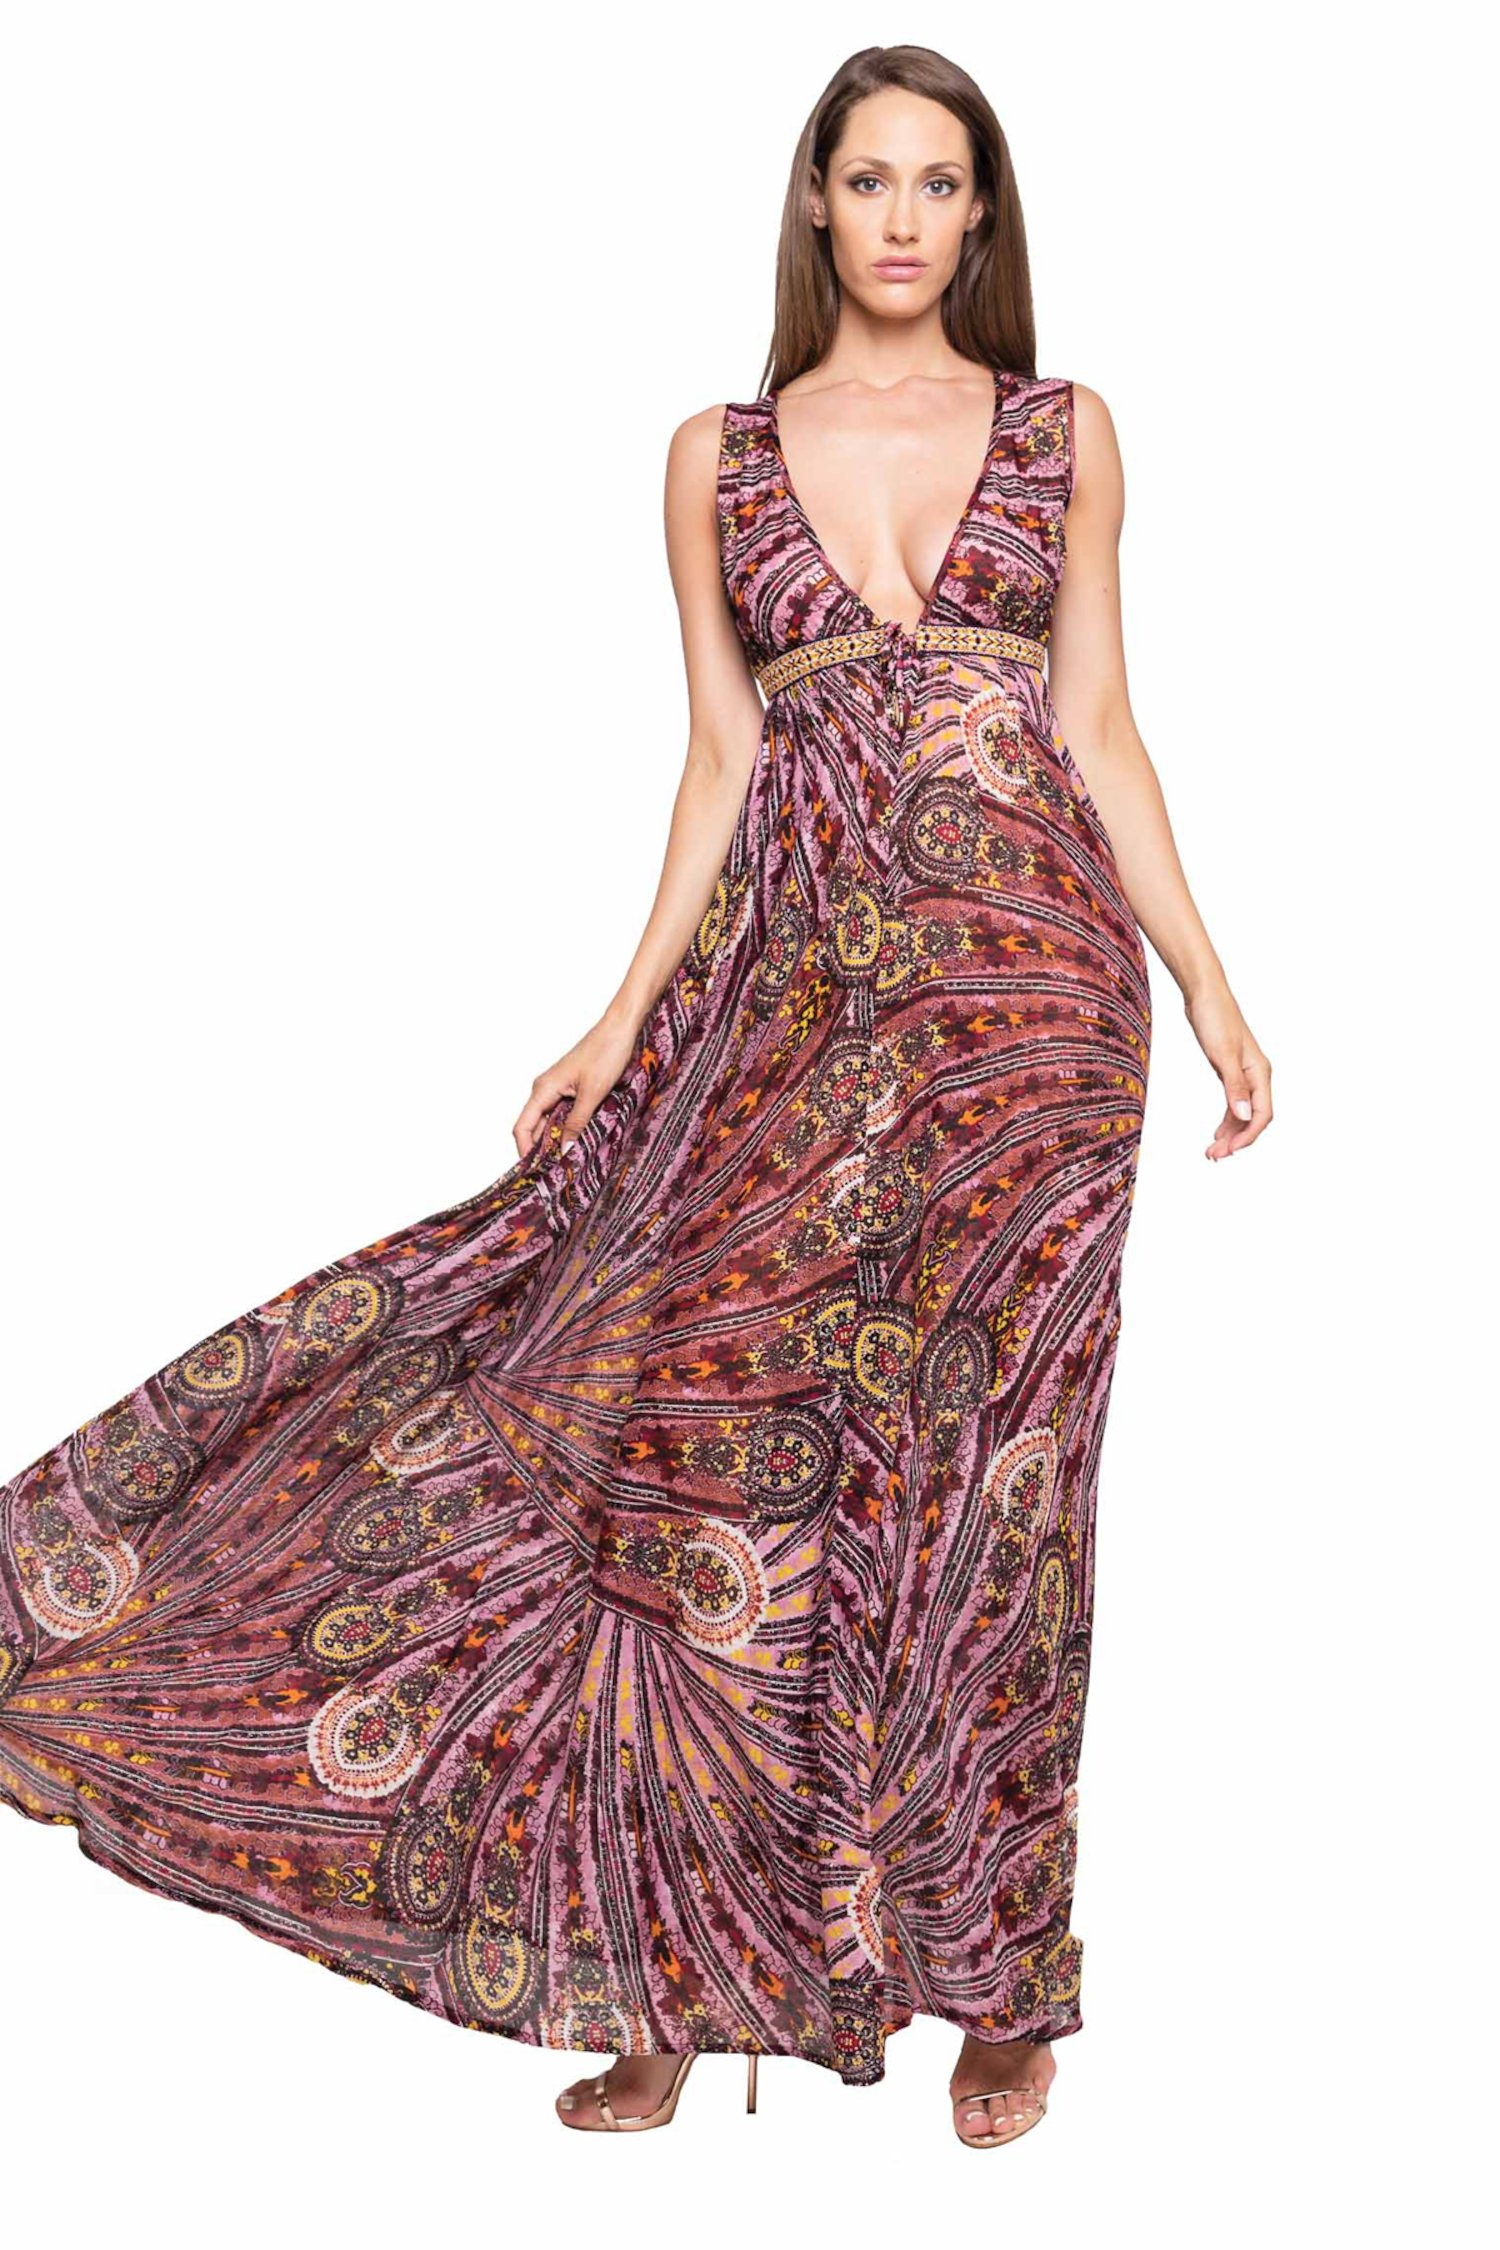 LONG DRESS EMPIRE EMBROIDERY THREAD - Cachemire Rosa